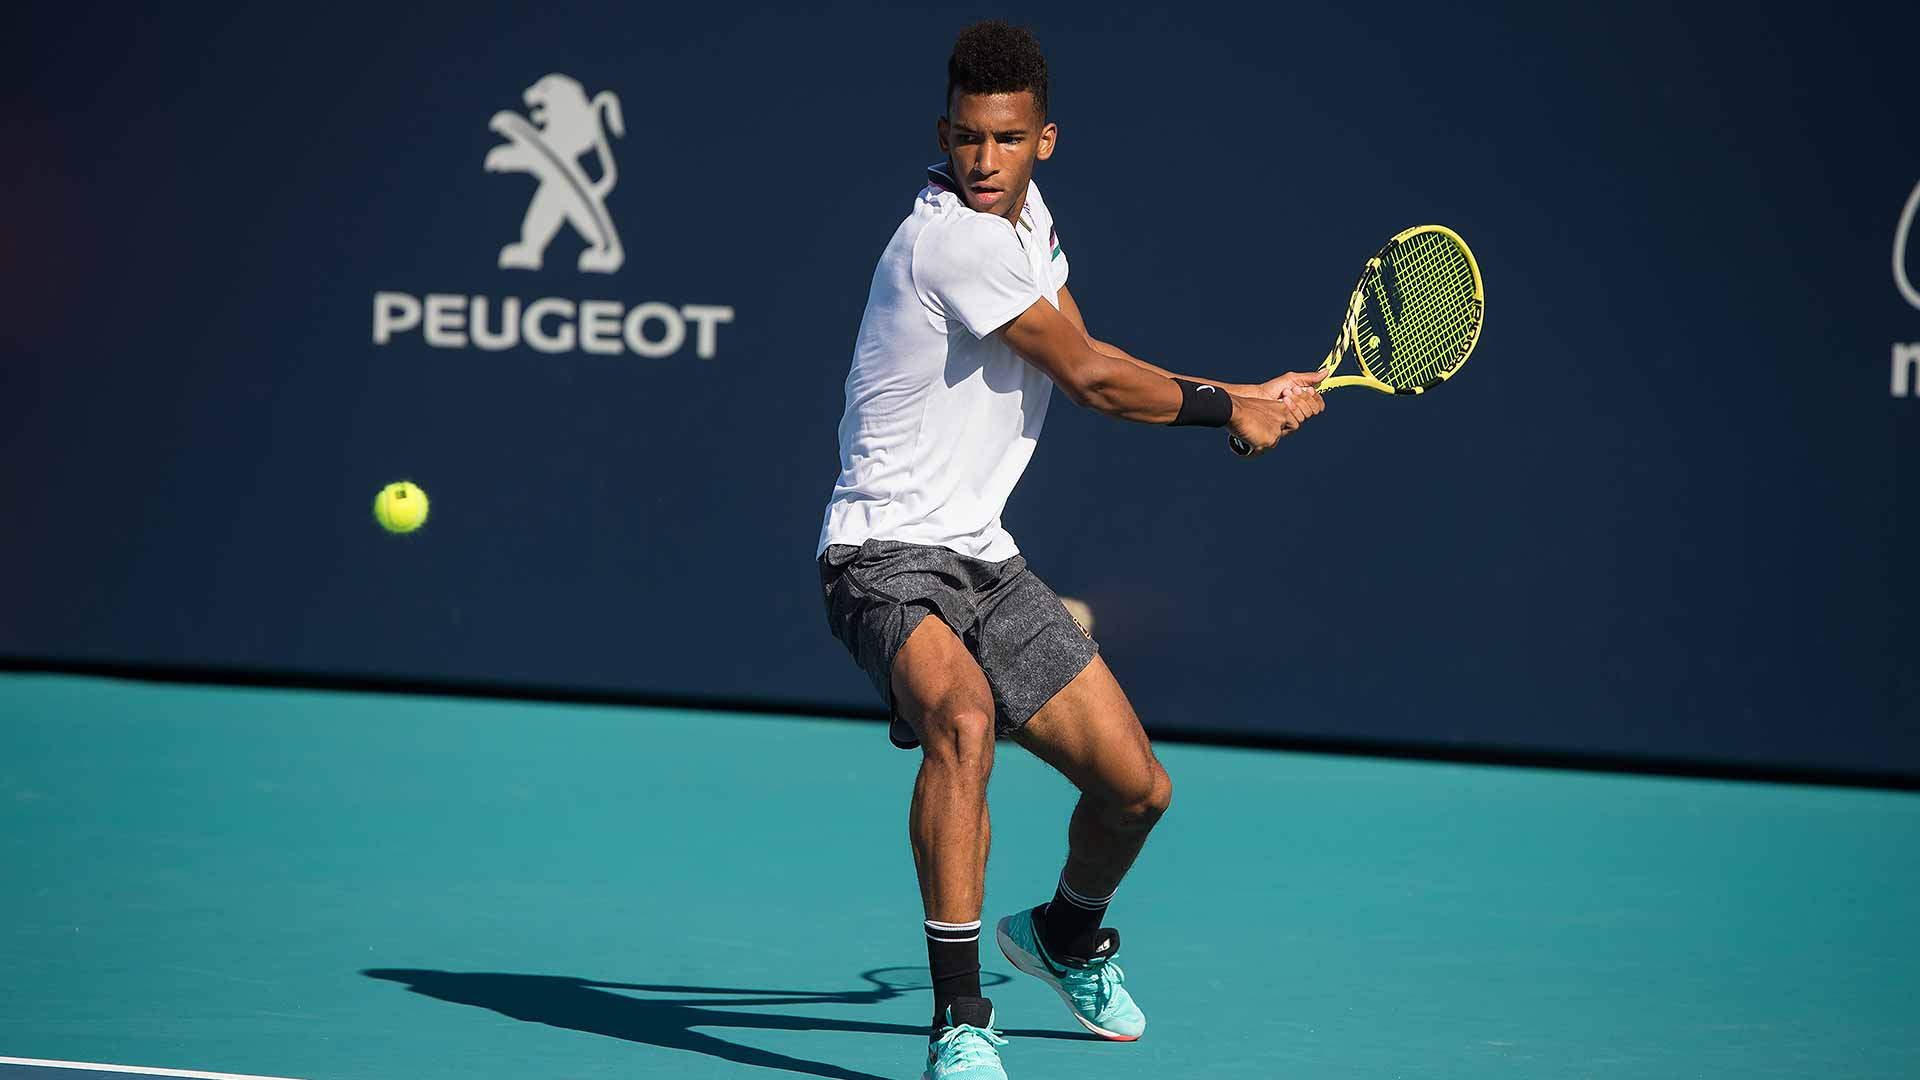 Felix Auger-Aliassime will play in Miami main draw